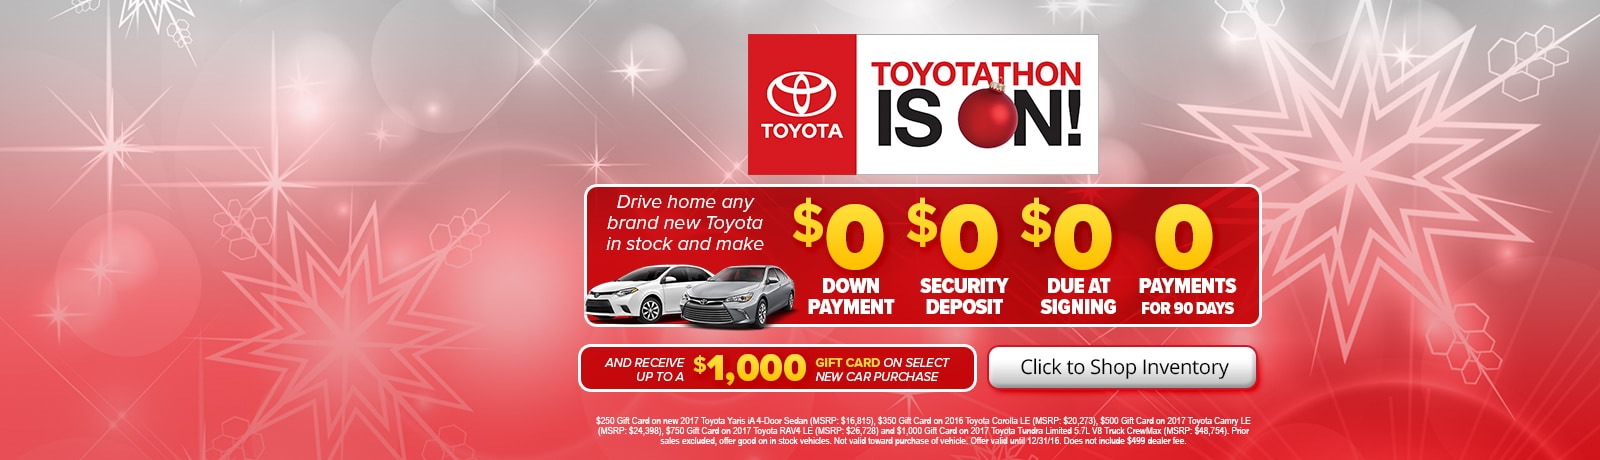 Toyota Dealer North Wilkesboro Nc New Toyota Certified